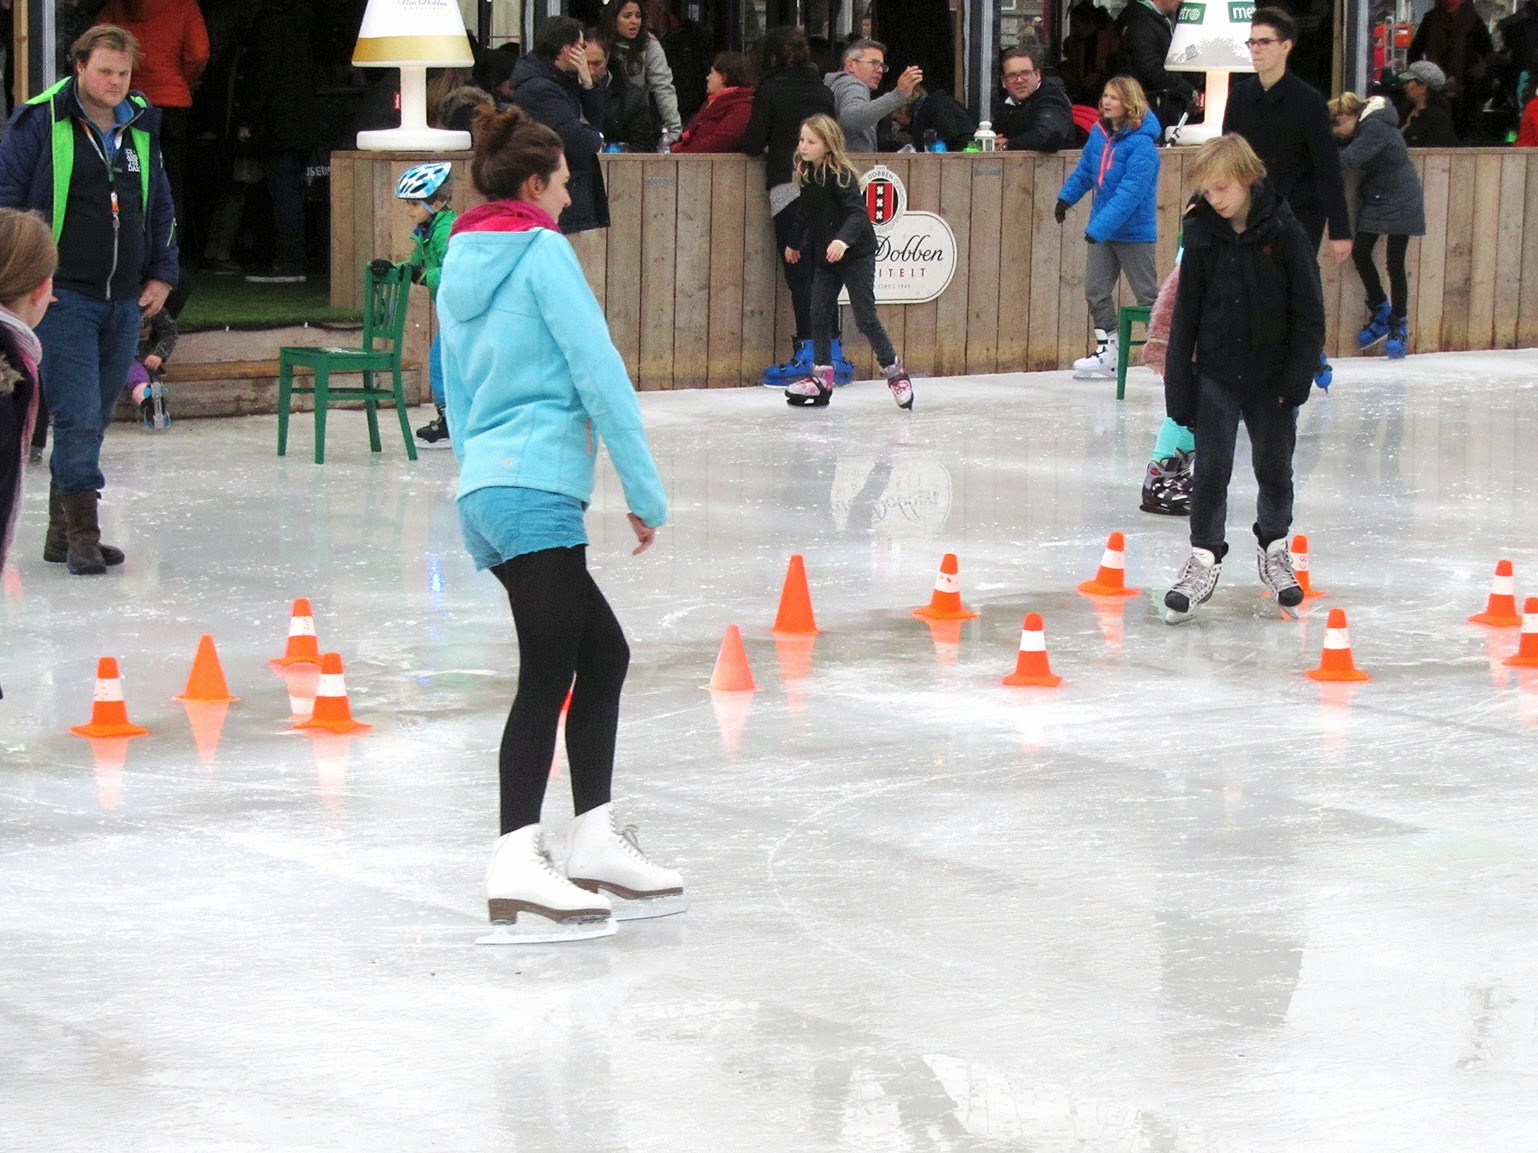 skating girl in blue